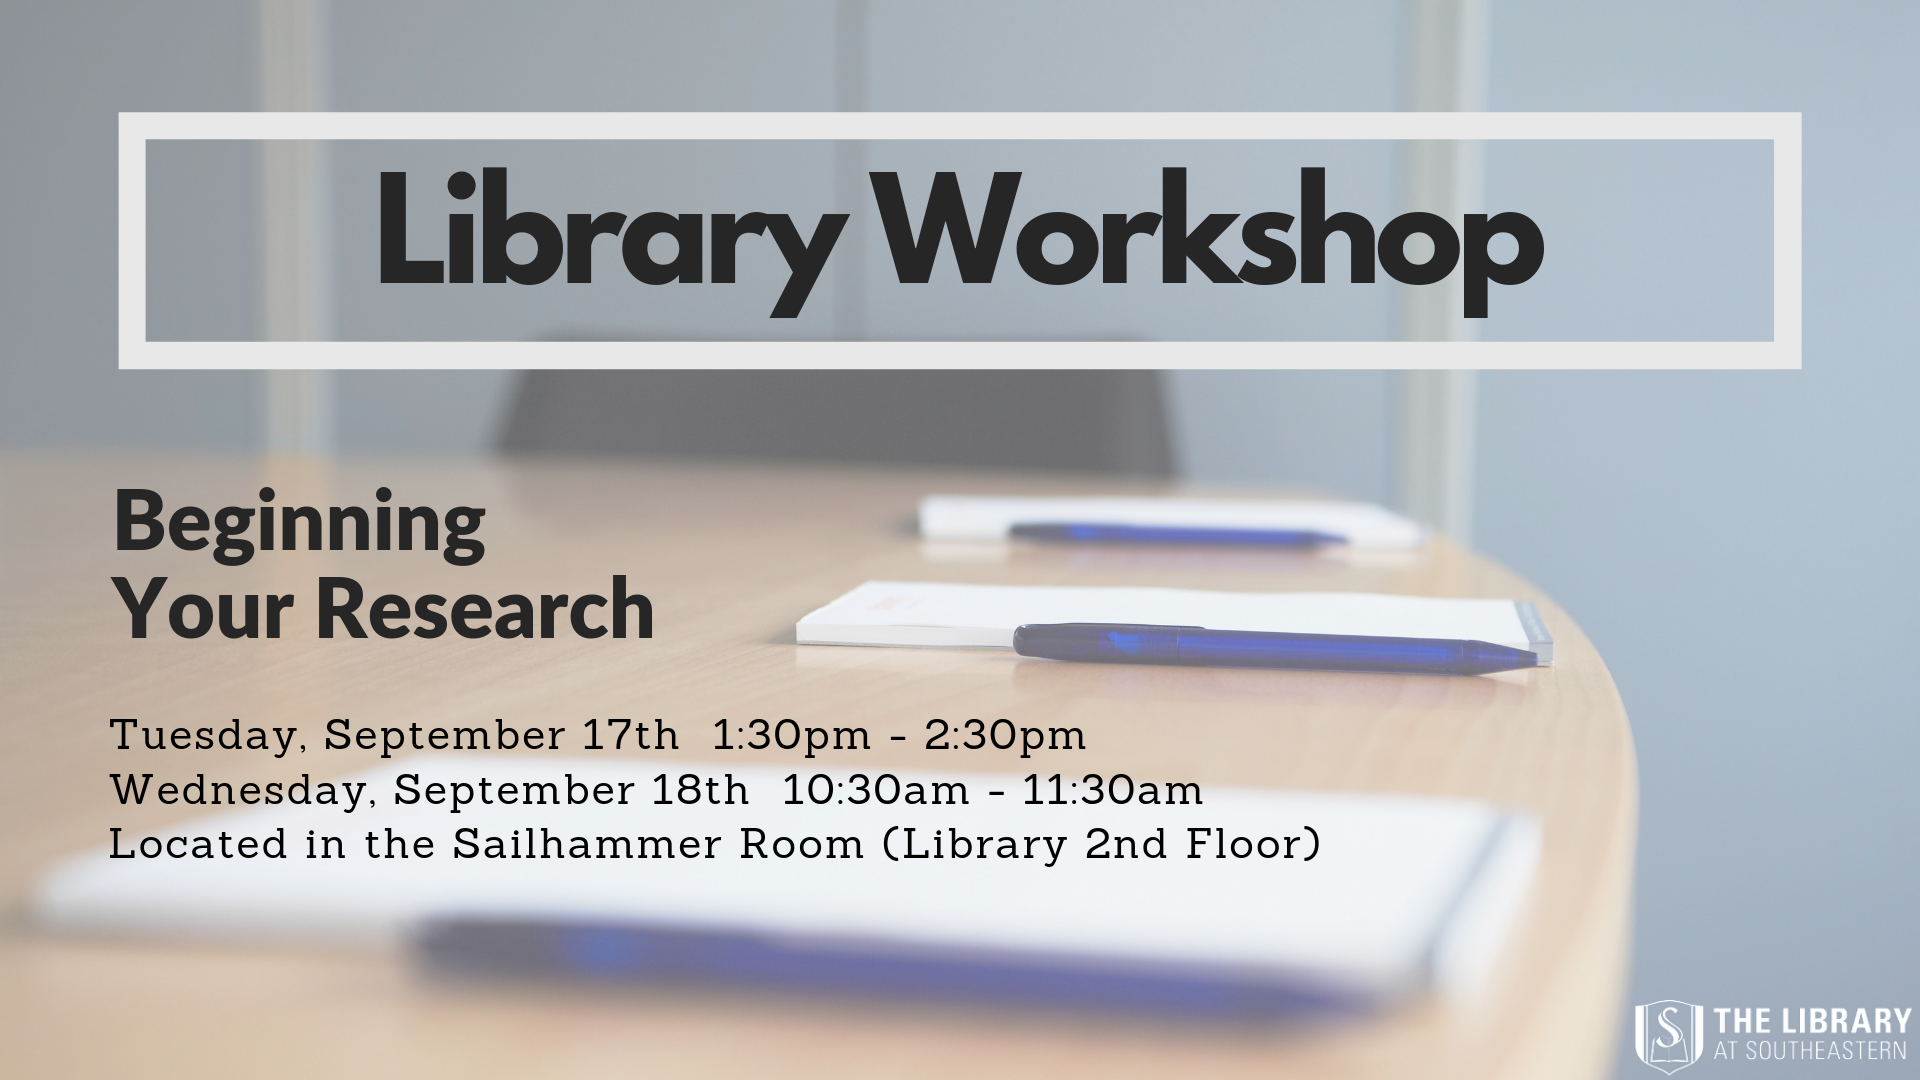 Library Workshop: Beginning Your Research